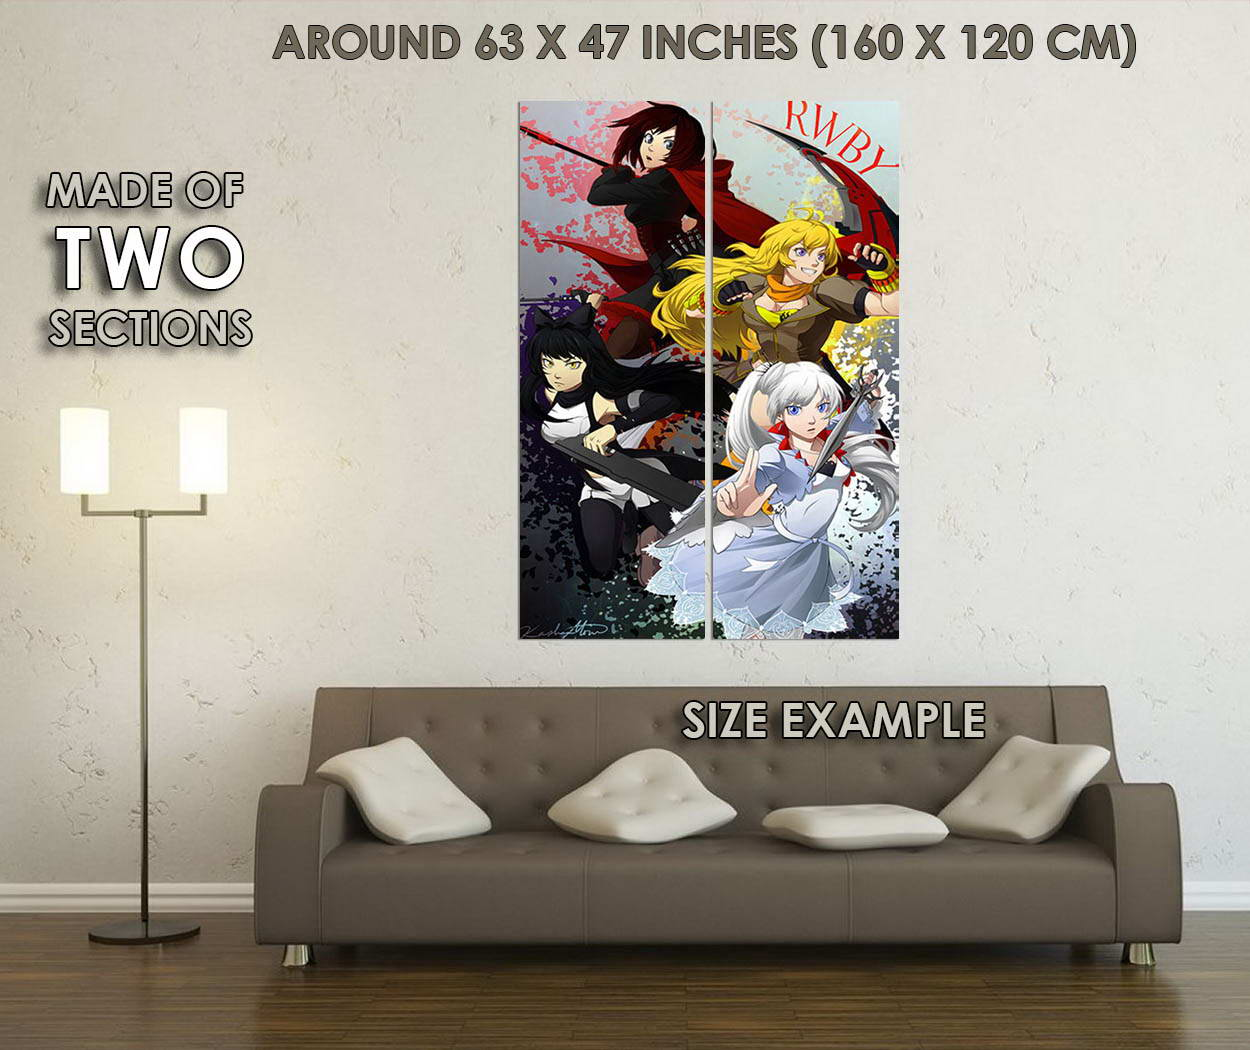 10293-RWBY-Volume-2-3-Hot-Anime-Ruby-Rose-LAMINATED-POSTER-CA thumbnail 6